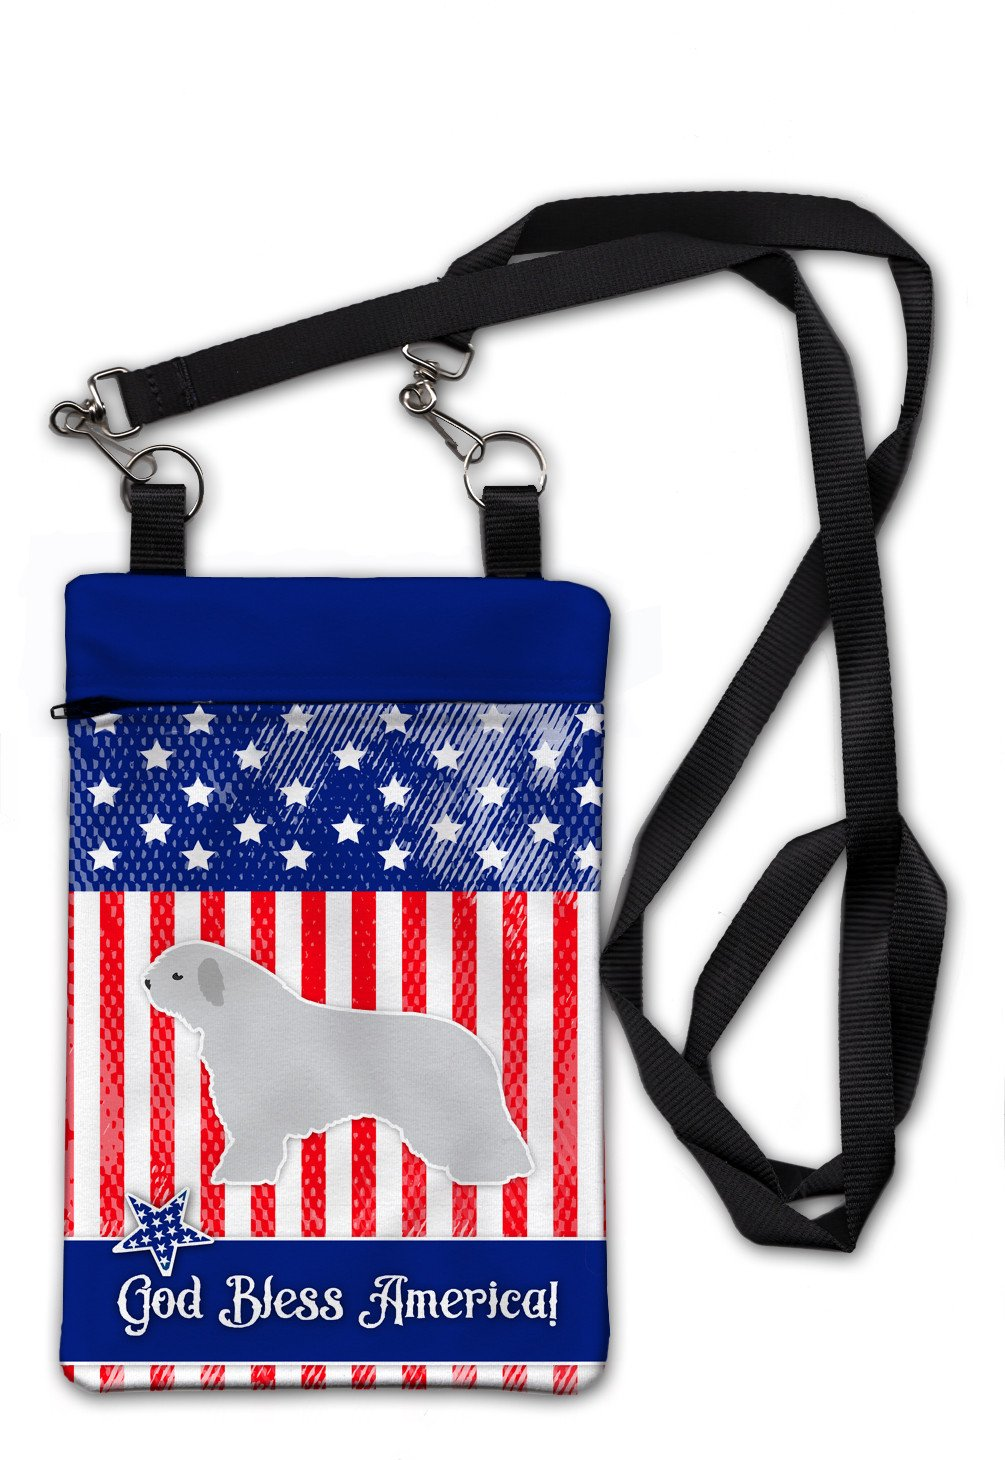 USA Patriotic Spanish Water Dog Crossbody Bag Purse BB3315OBDY by Caroline's Treasures